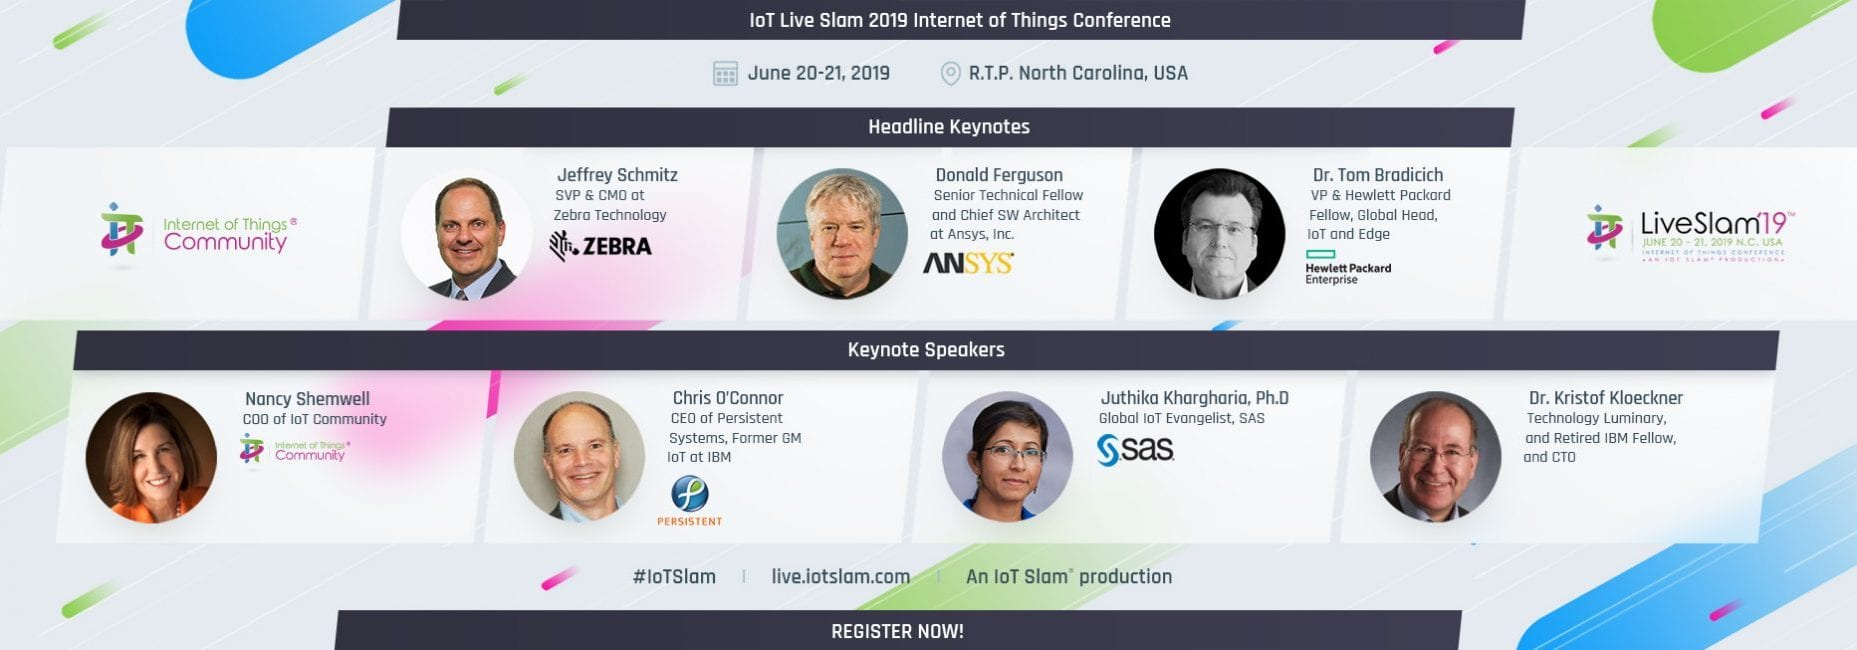 IoT Slam Live 2019 Internet of Things Conference Keynote Speakers